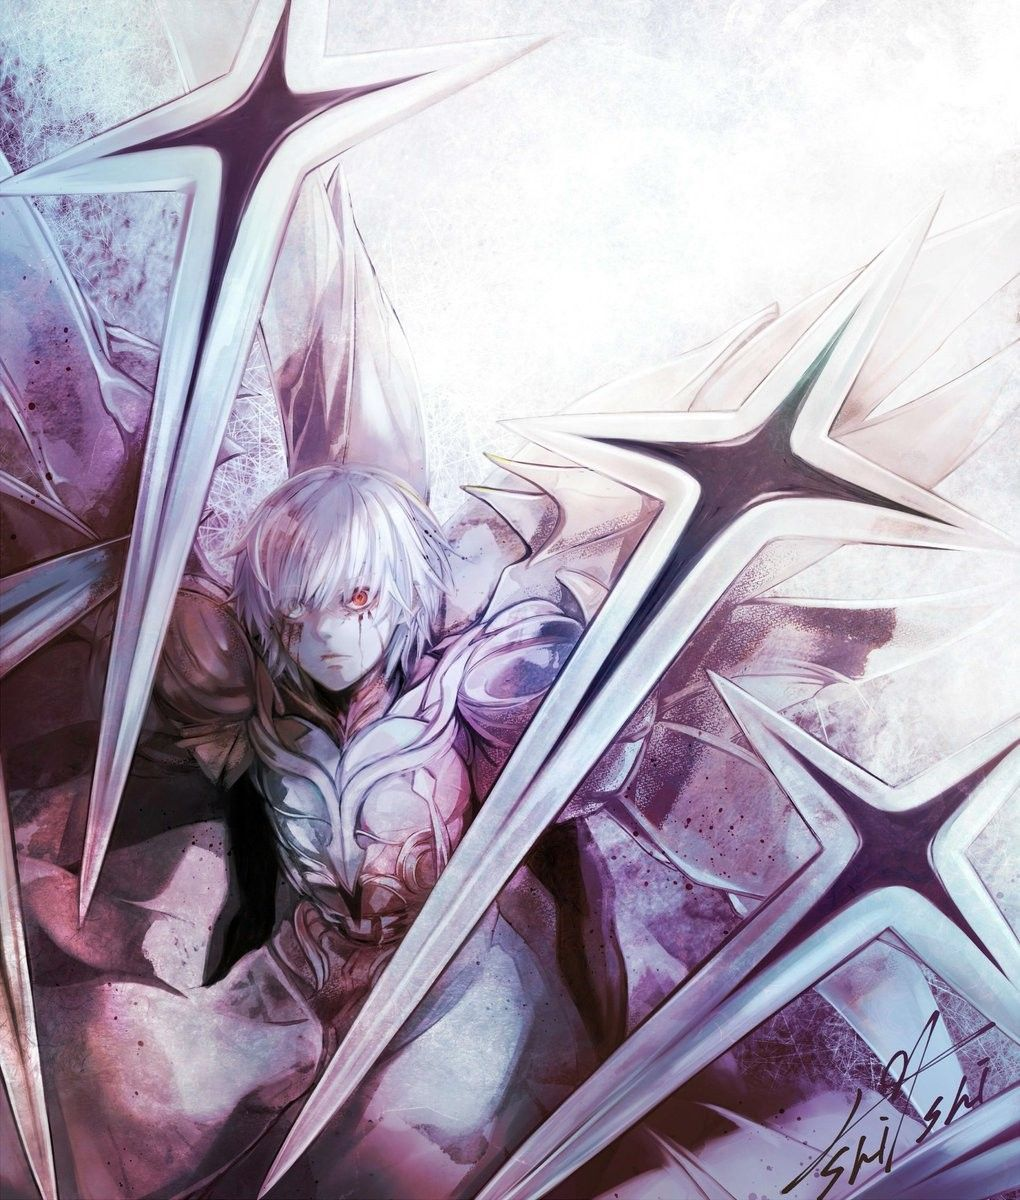 Pin On Sui Ishida Tokyo Ghoul Art And Chapters